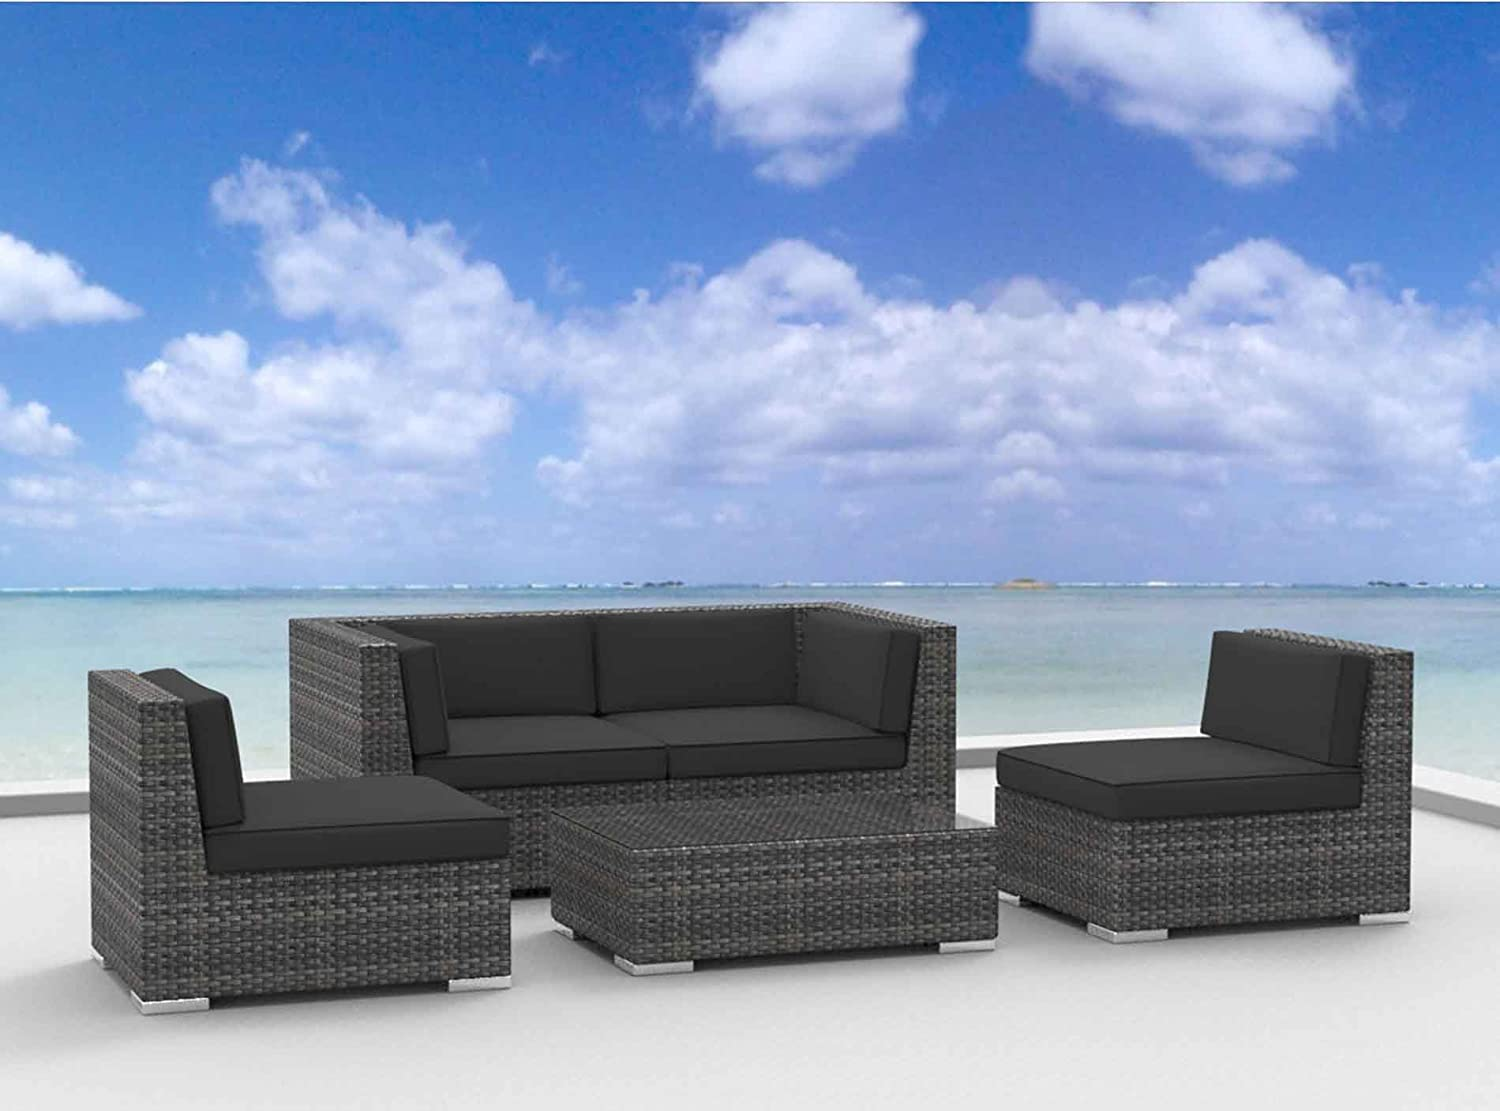 www.urbanfurnishing.net Urban Furnishing - RIO 5pc Modern Outdoor Backyard Wicker Rattan Patio Furniture Sofa Sectional Couch Set - Charcoal at Sears.com